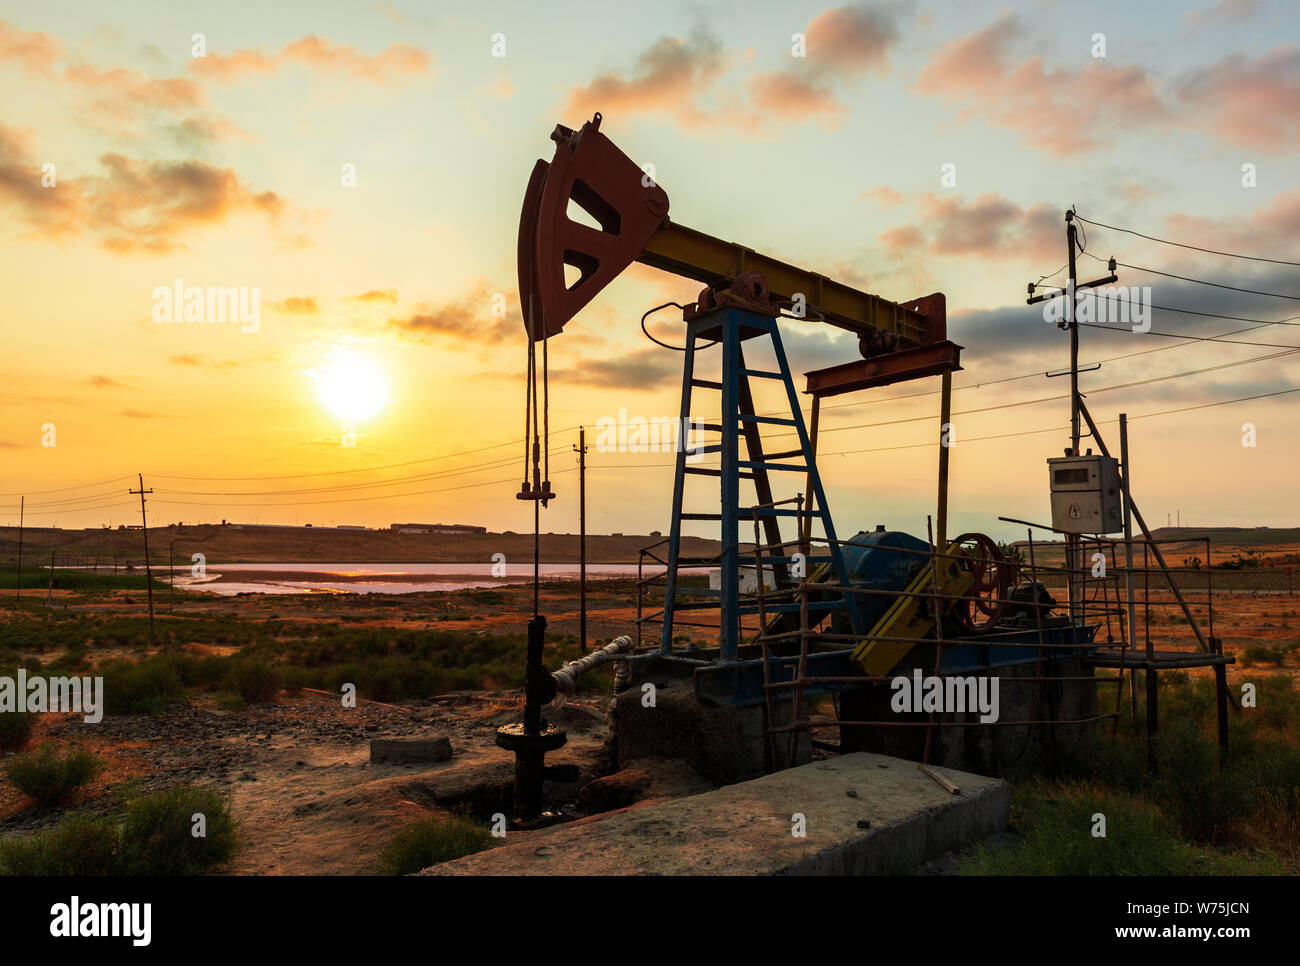 Oil rig pump against a colorful sunset sky Stock Photo